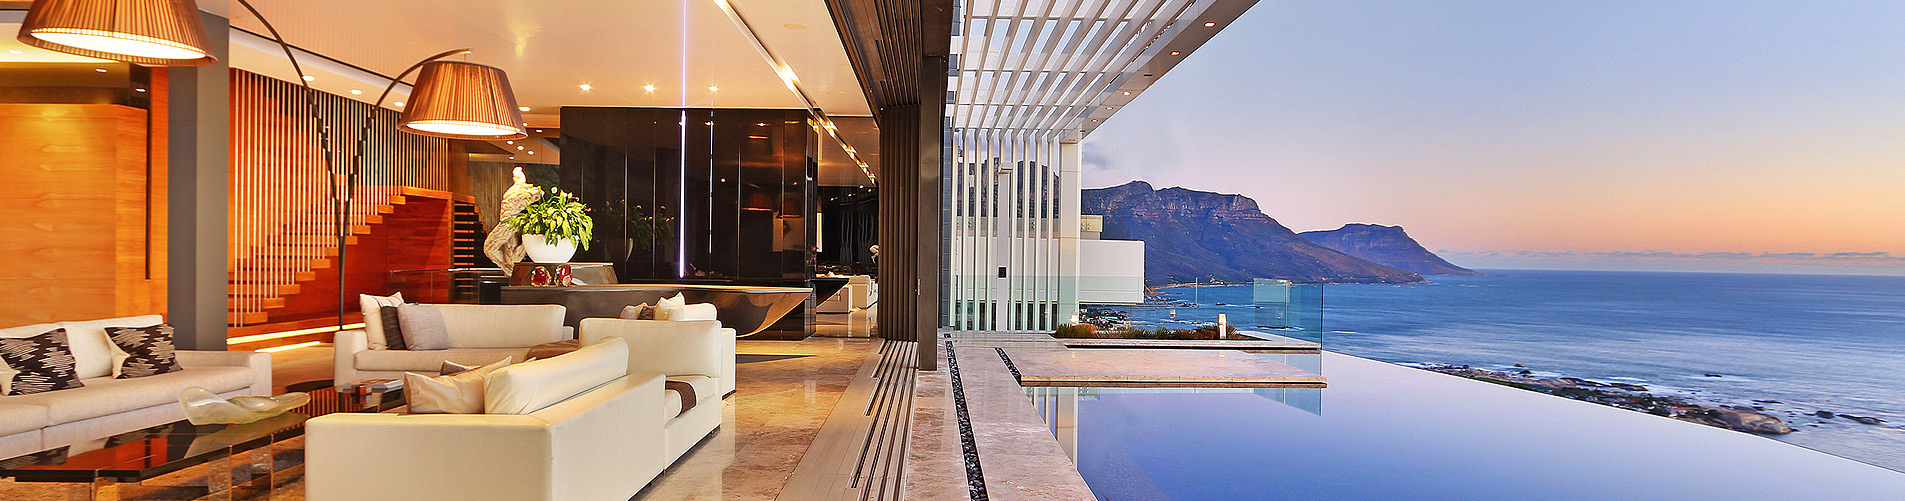 Dusk Real Estate Photography in Cape Town with Ocean Views